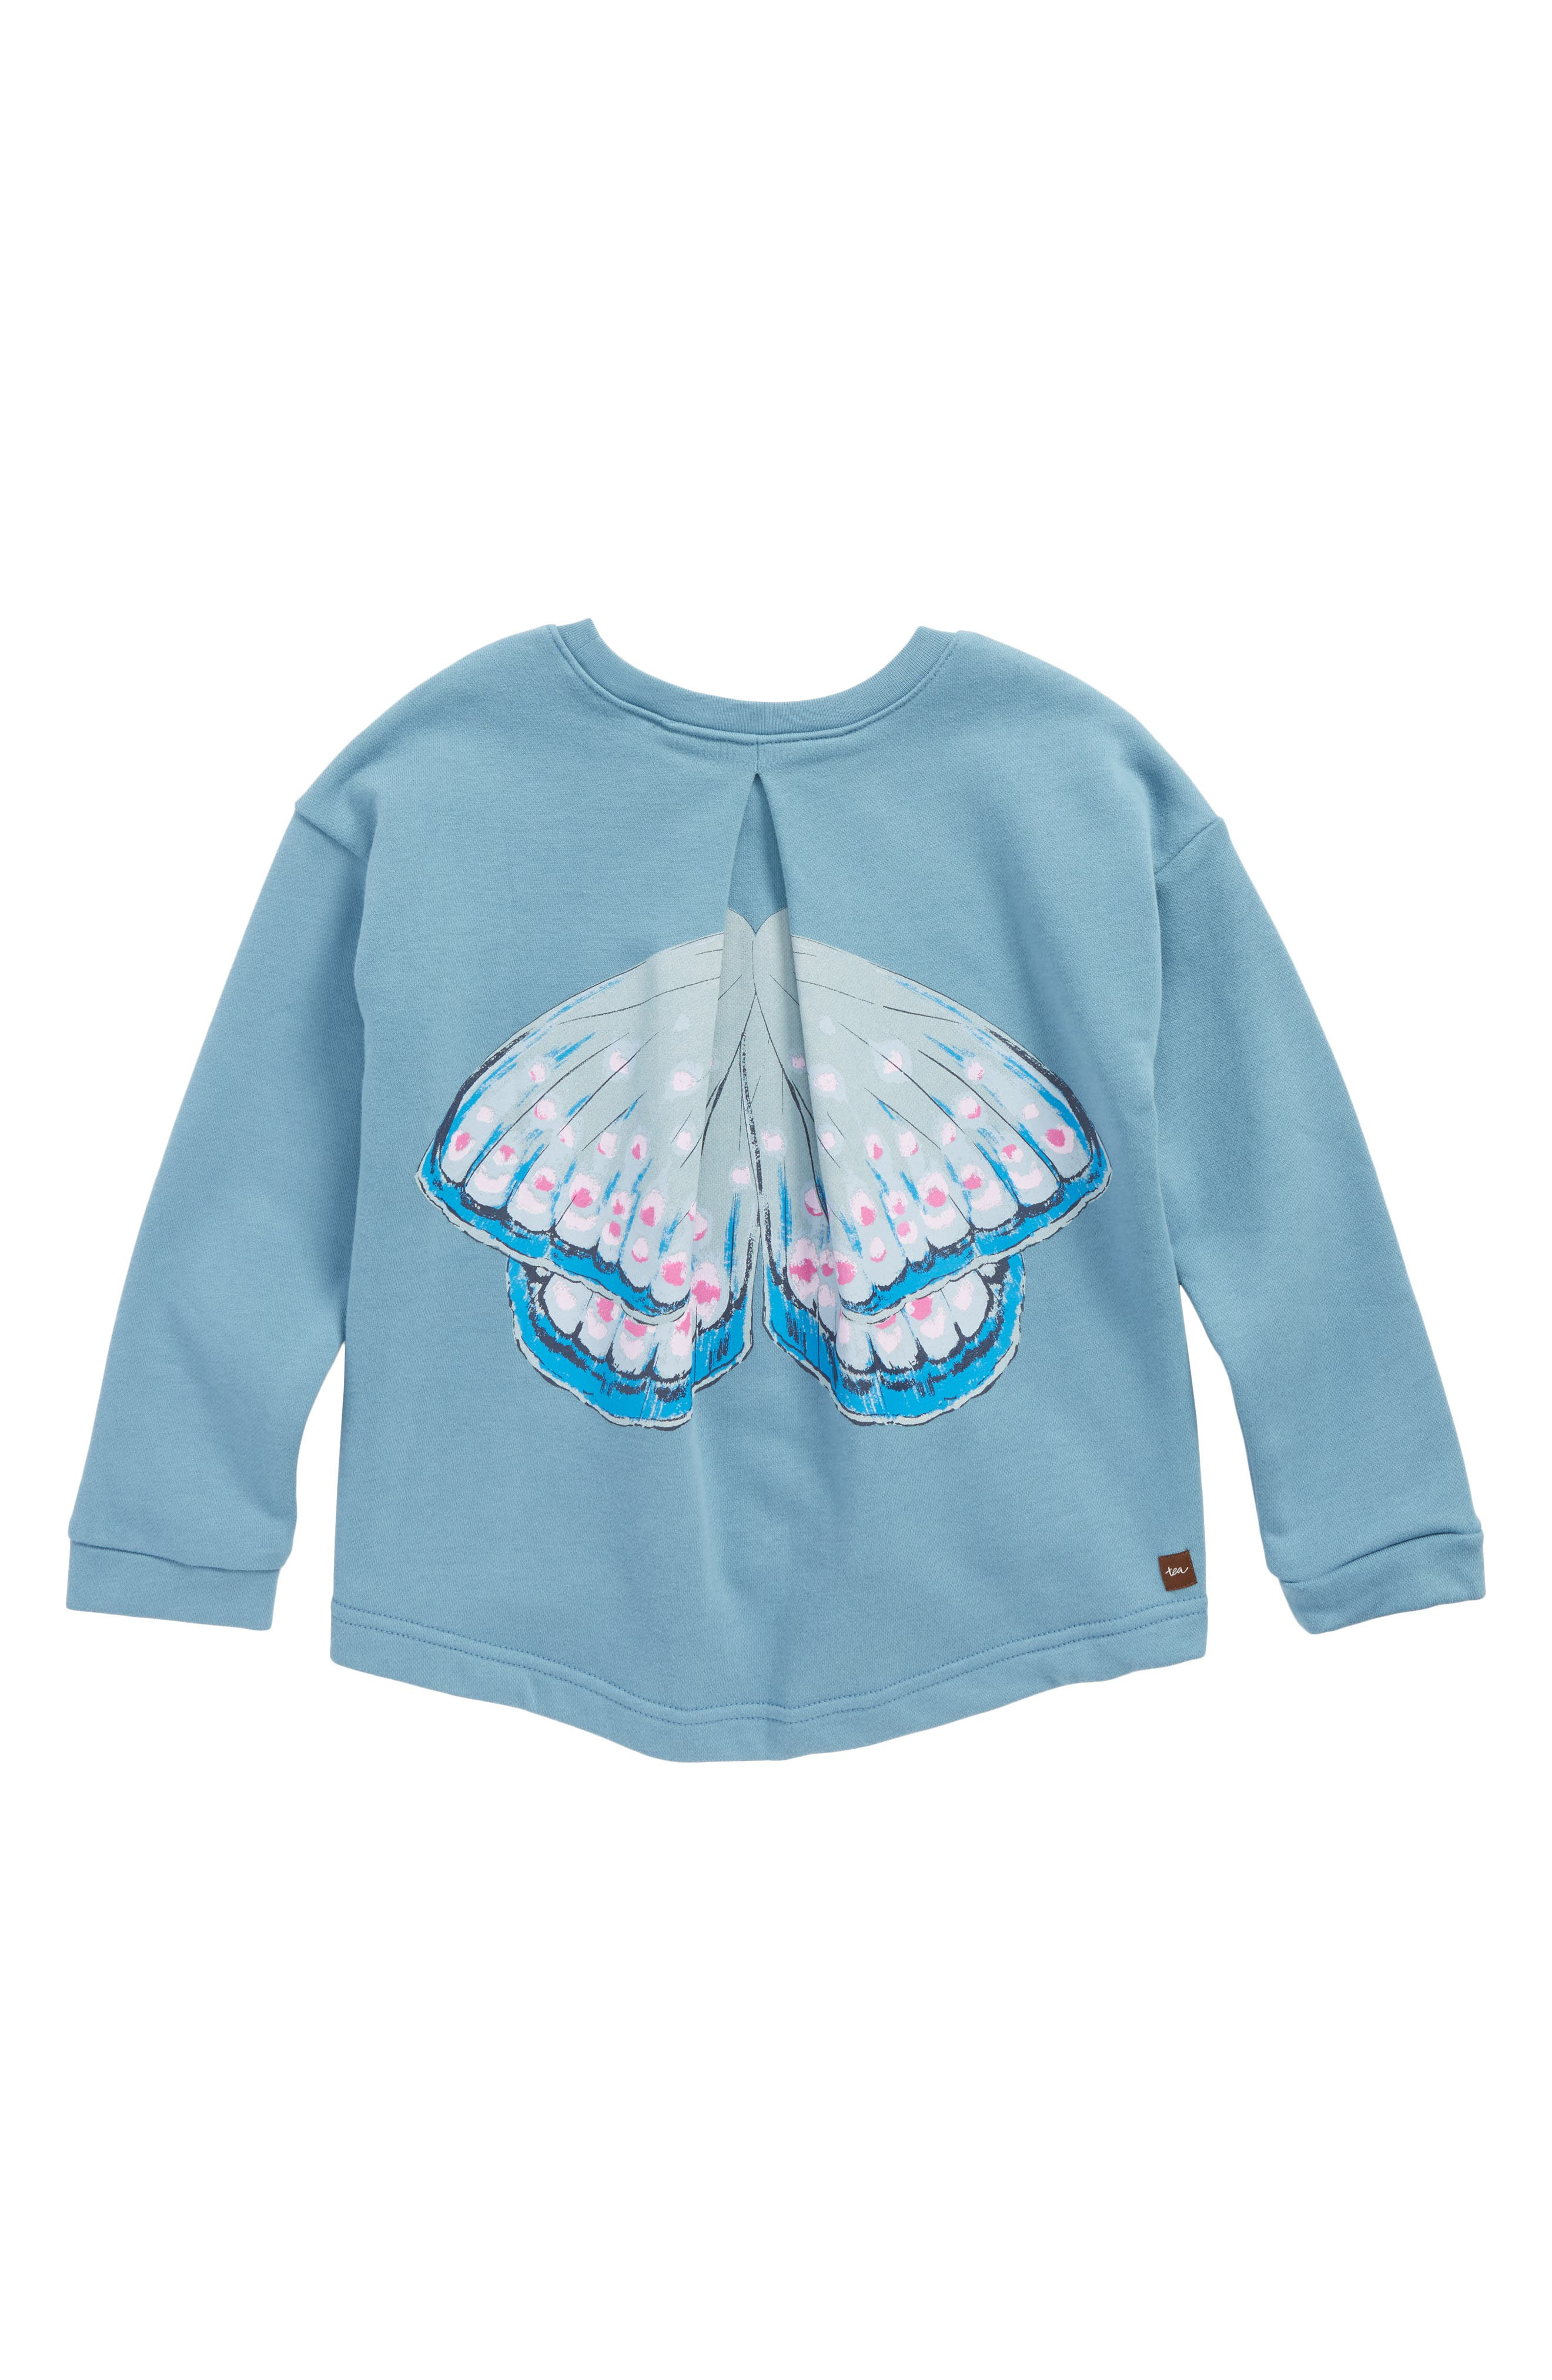 Fairy Wings Pullover,                             Alternate thumbnail 2, color,                             401